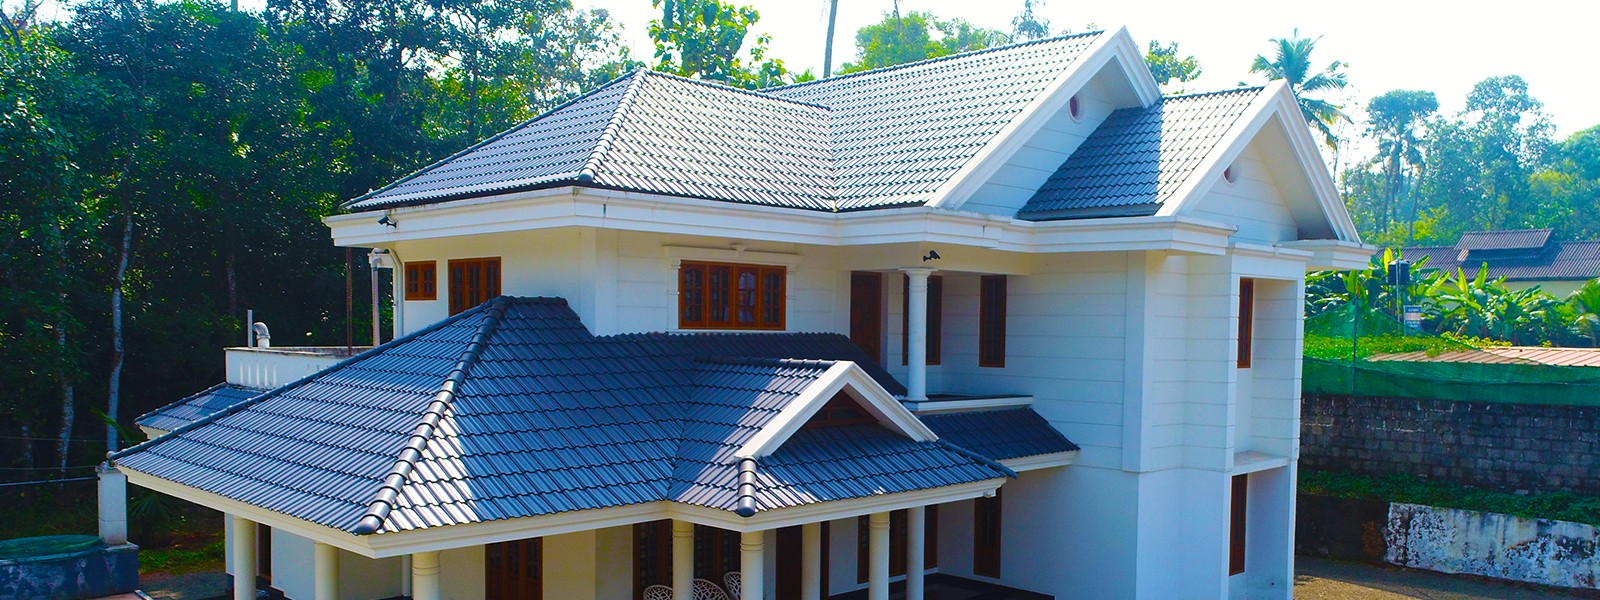 Ceramic roof tiles kottayam kerala,india | Pali roofs kottayam